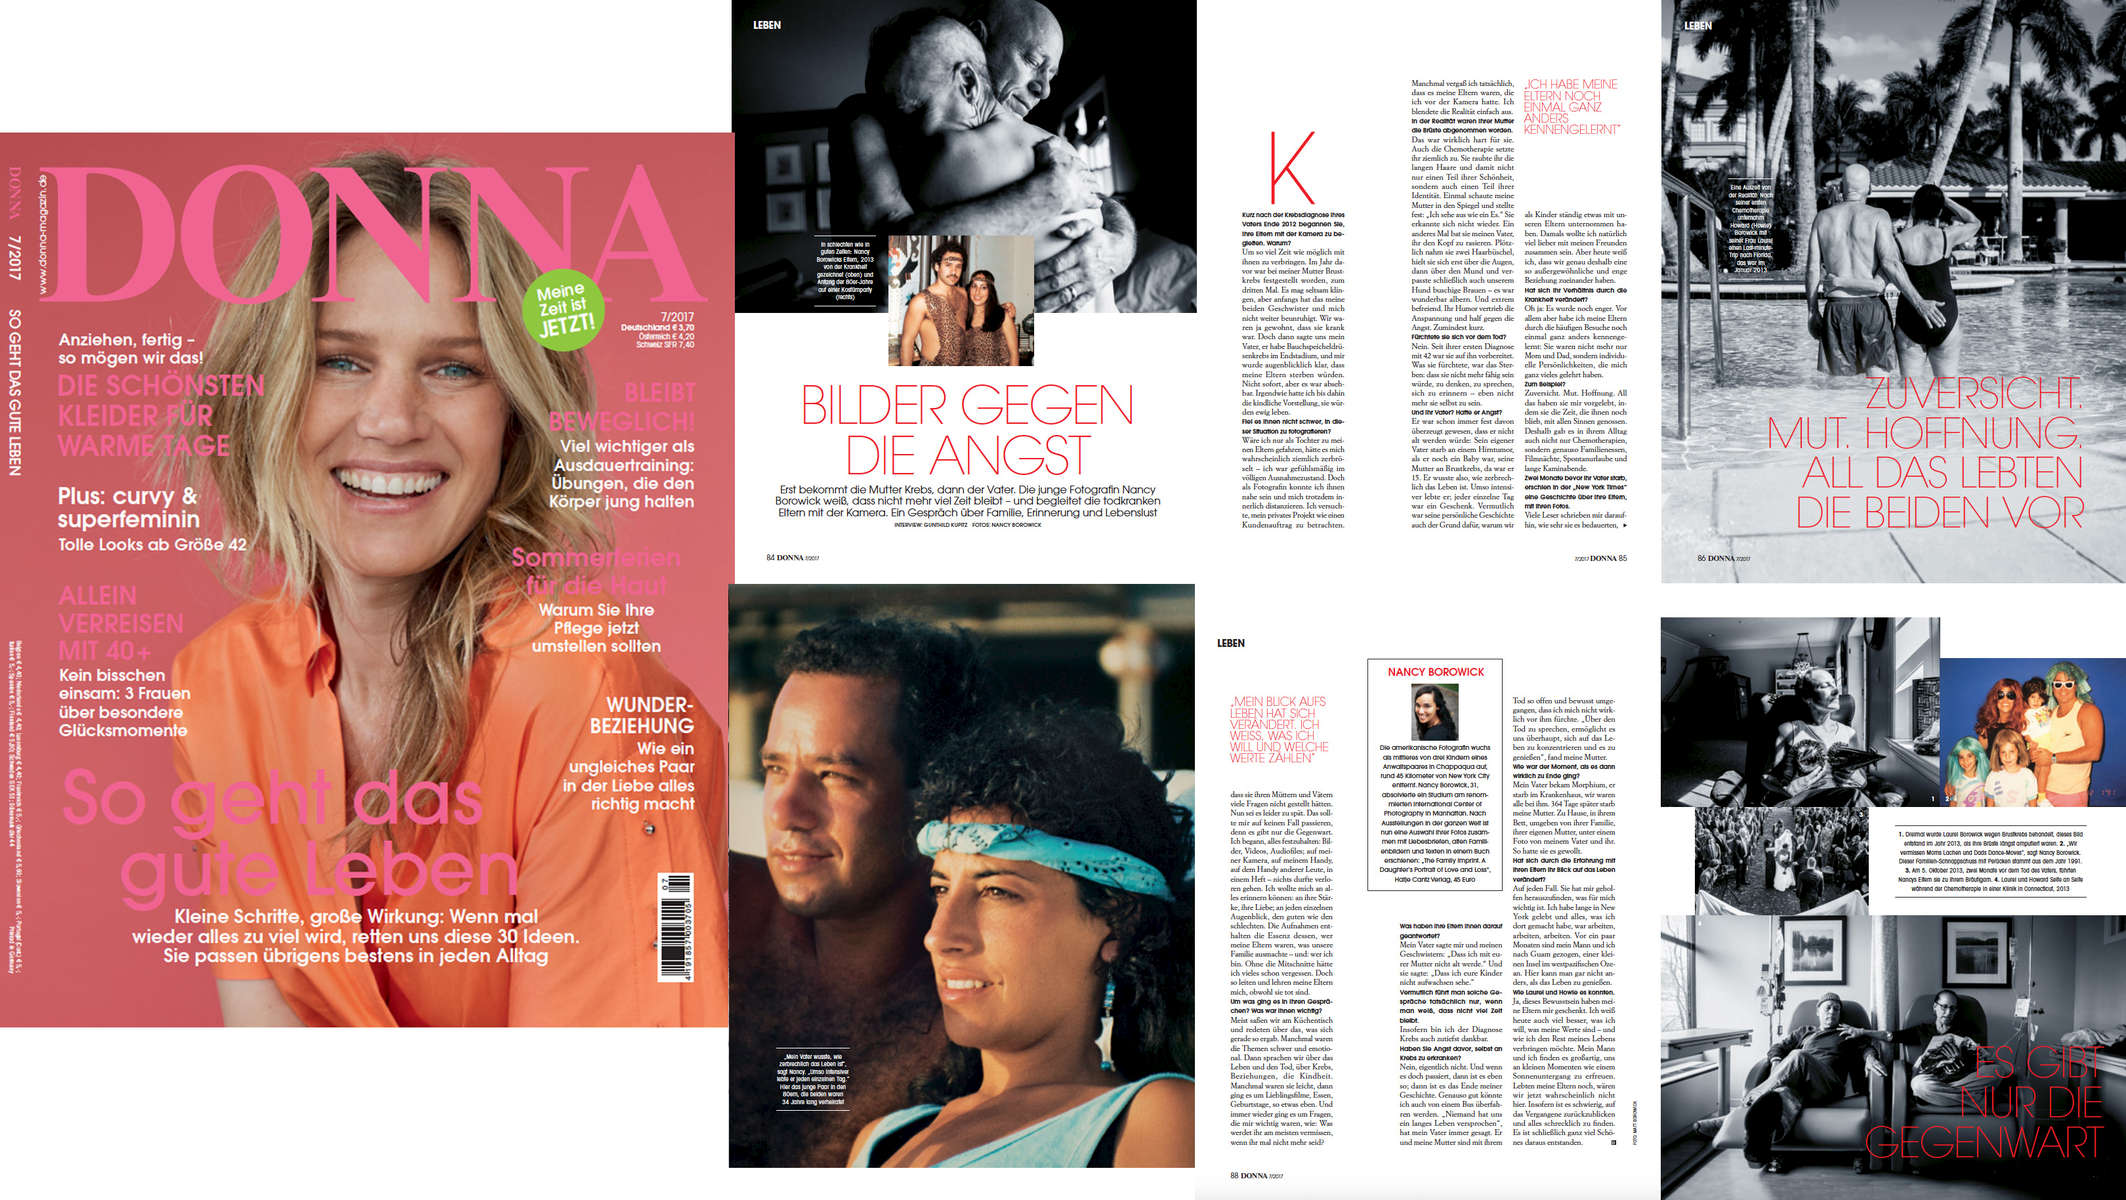 While I cannot read German, this spread in the July issue of Donna Magazin is pretty special to me as I had a wonderful interview with the very kind and thoughtful Gunthiuld Kupitz.